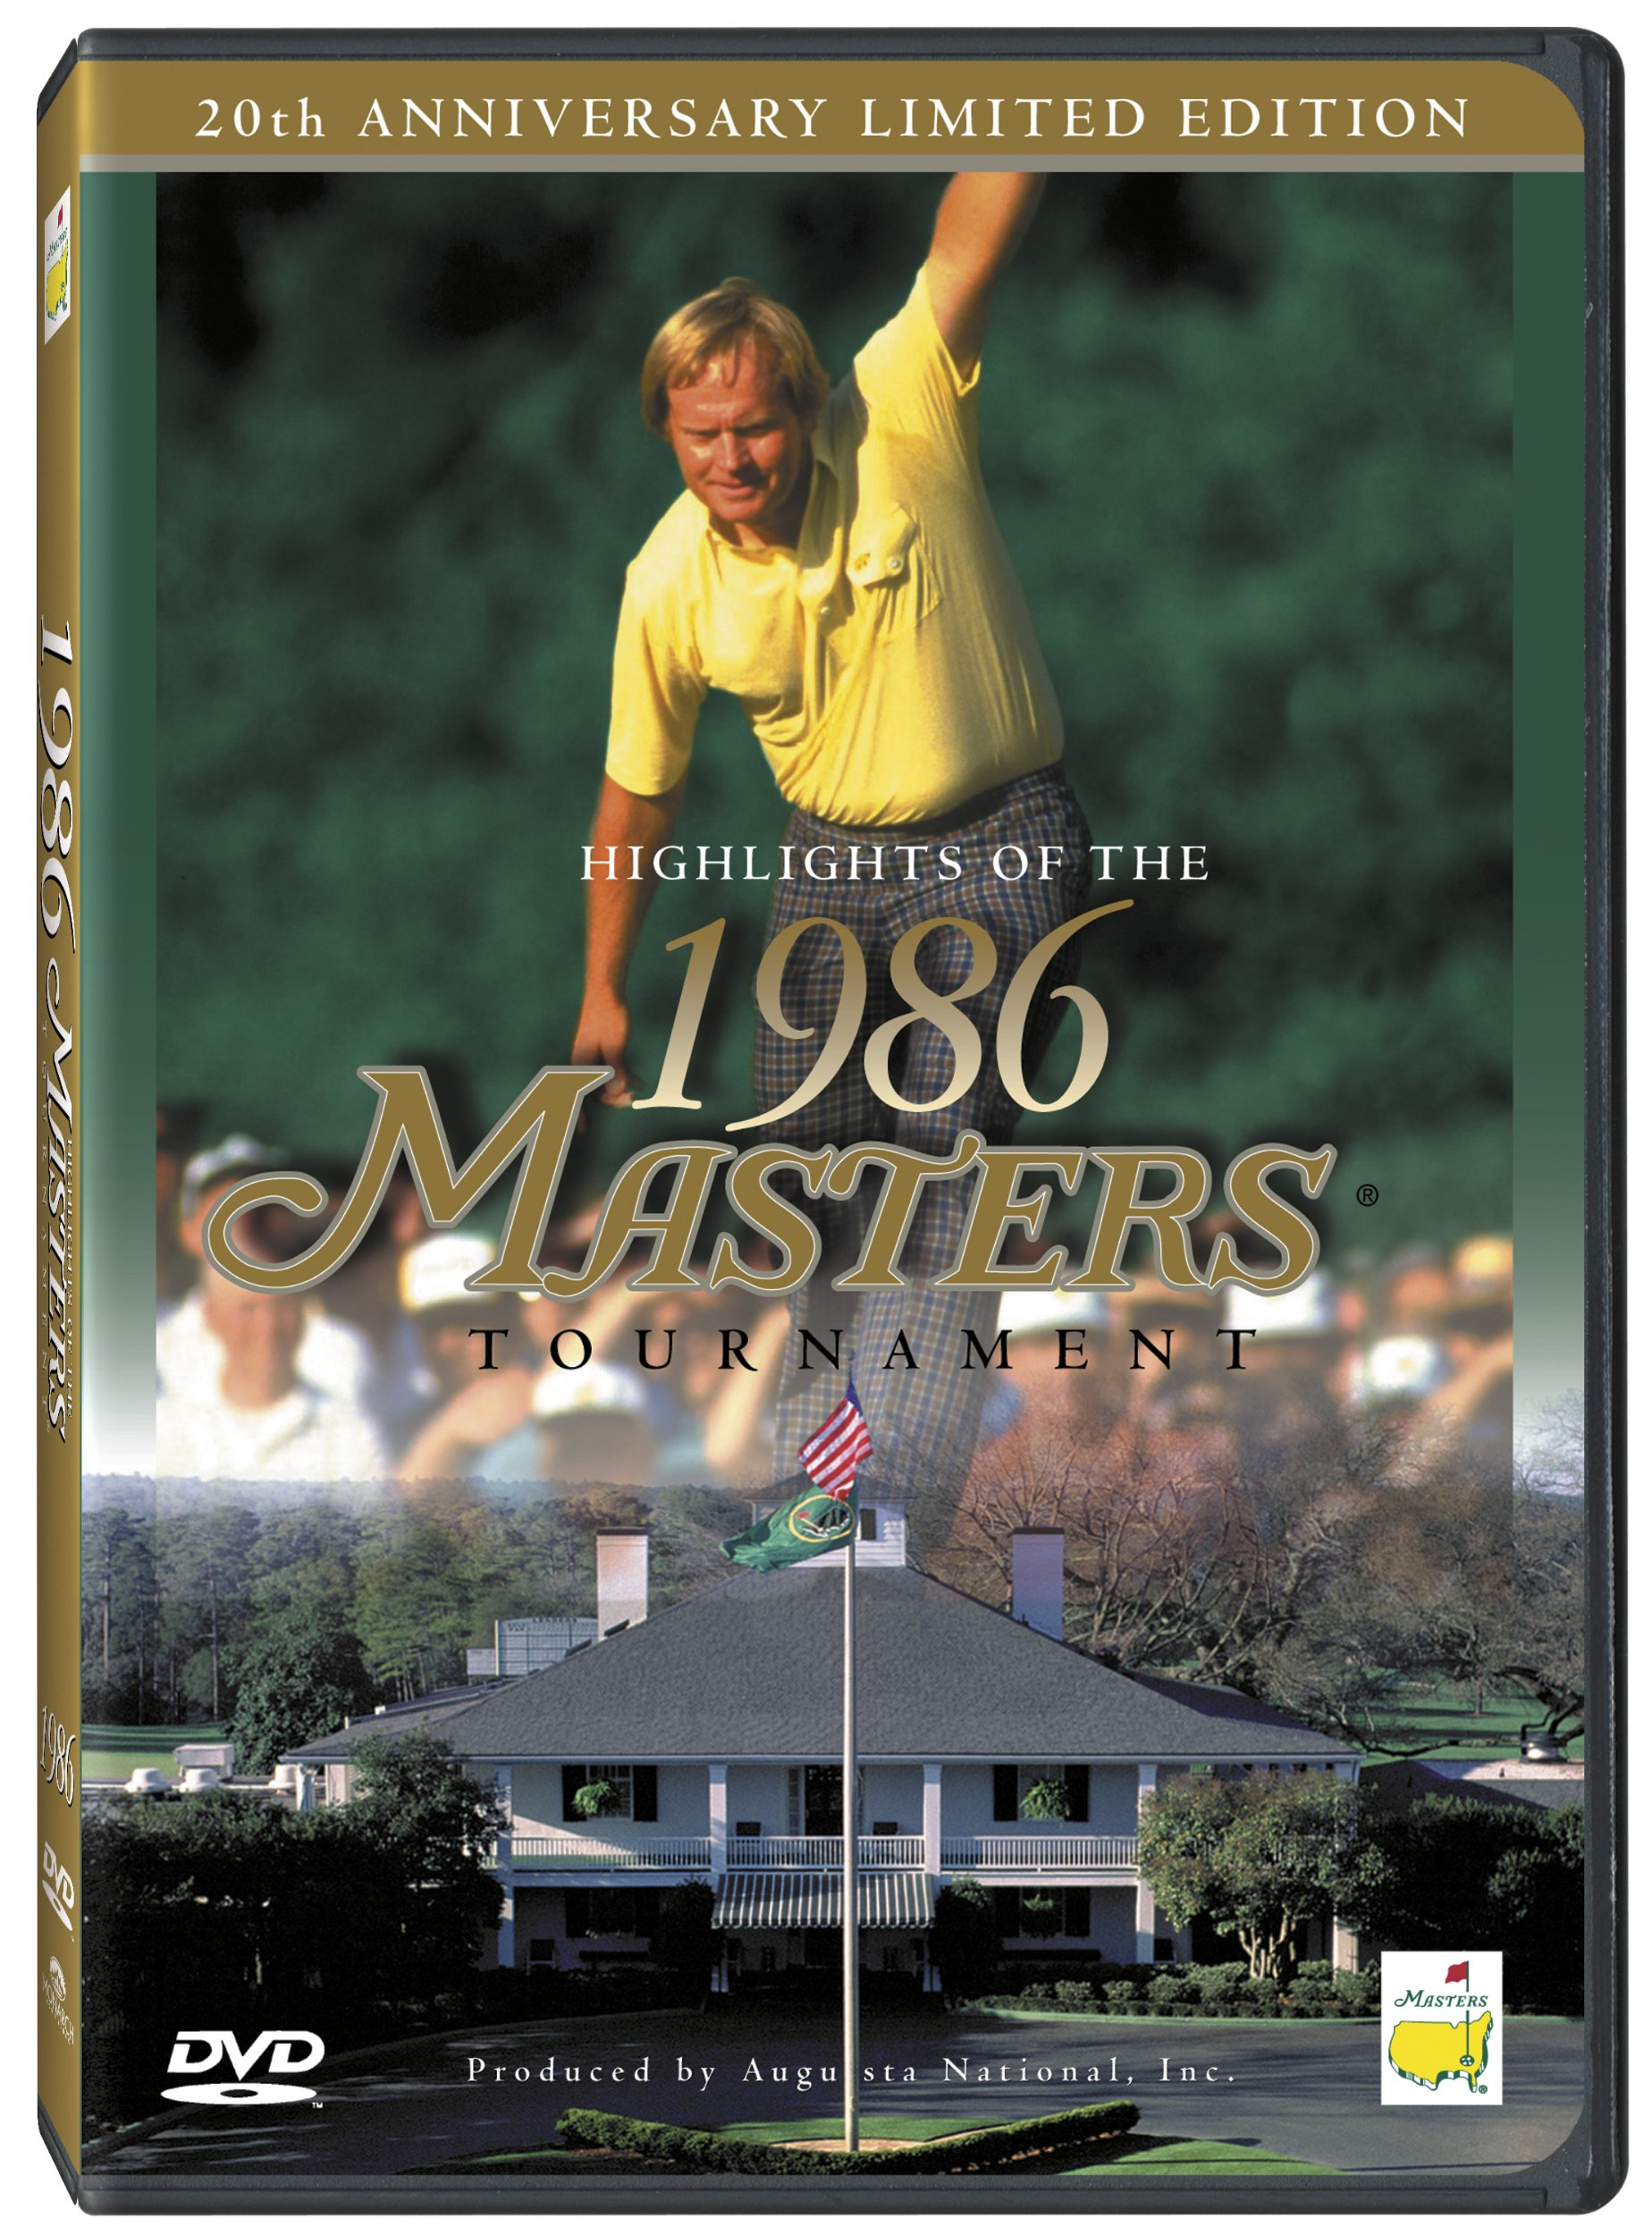 DVD : Highlights Of The 1986 Masters Tournament: 20th Anniversary (DVD)